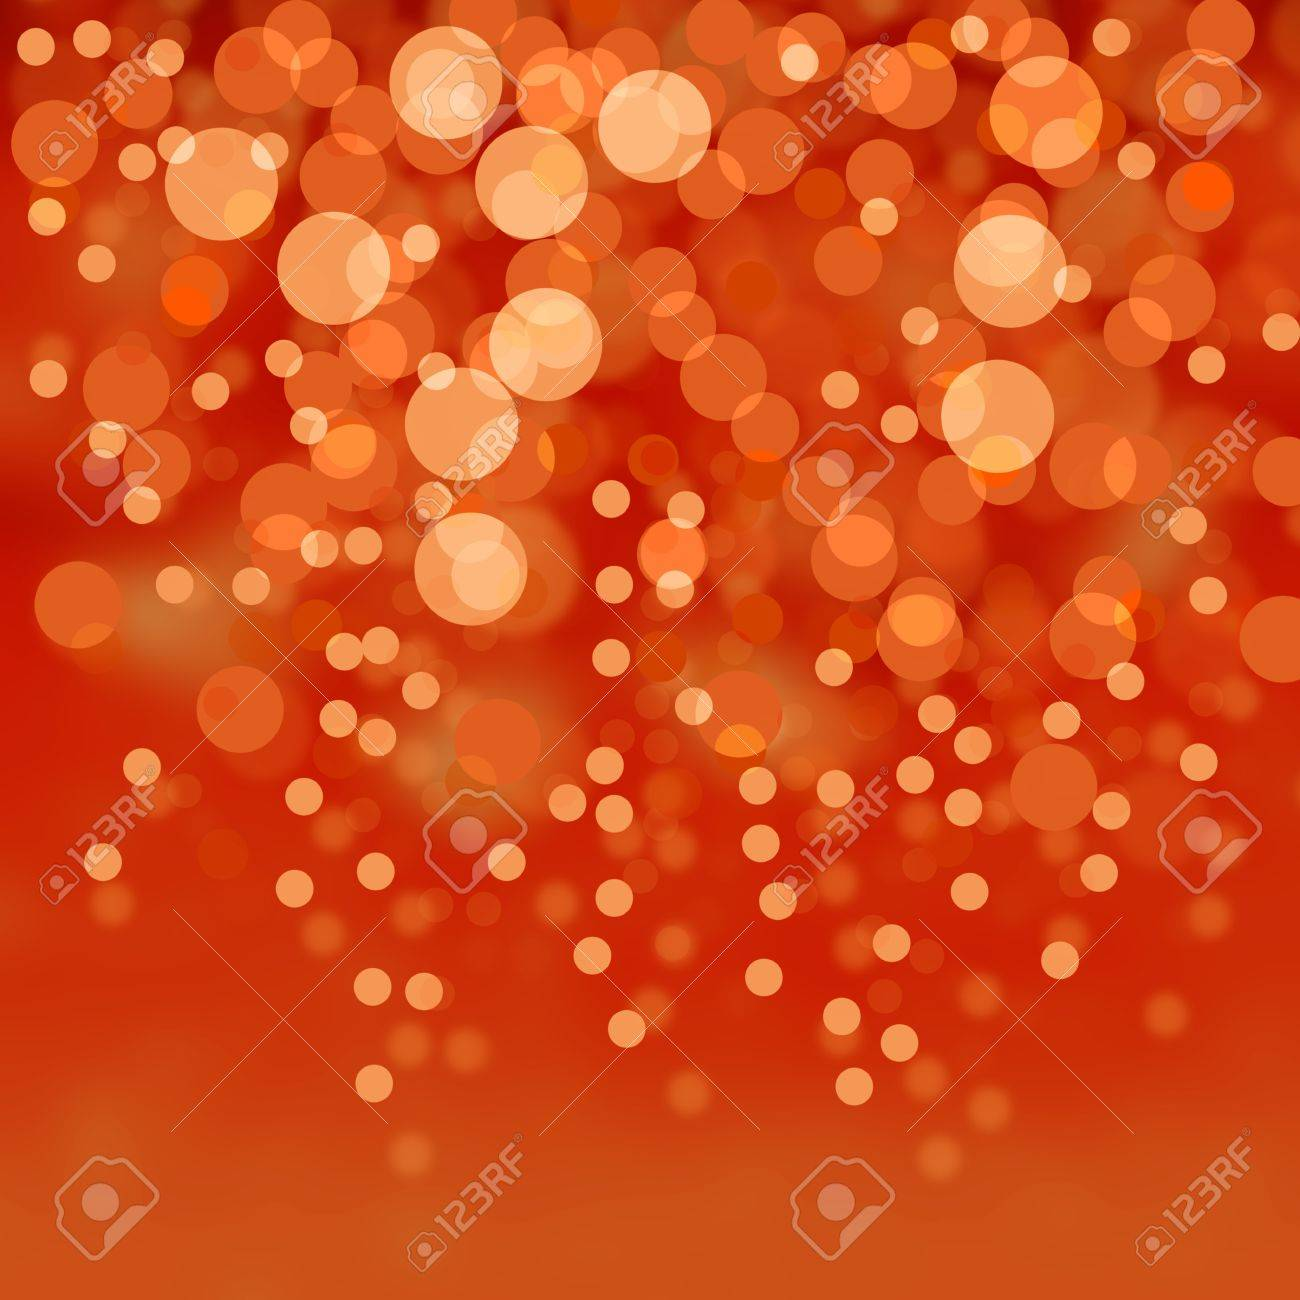 Abstract New Year Stock Photo - 16847002